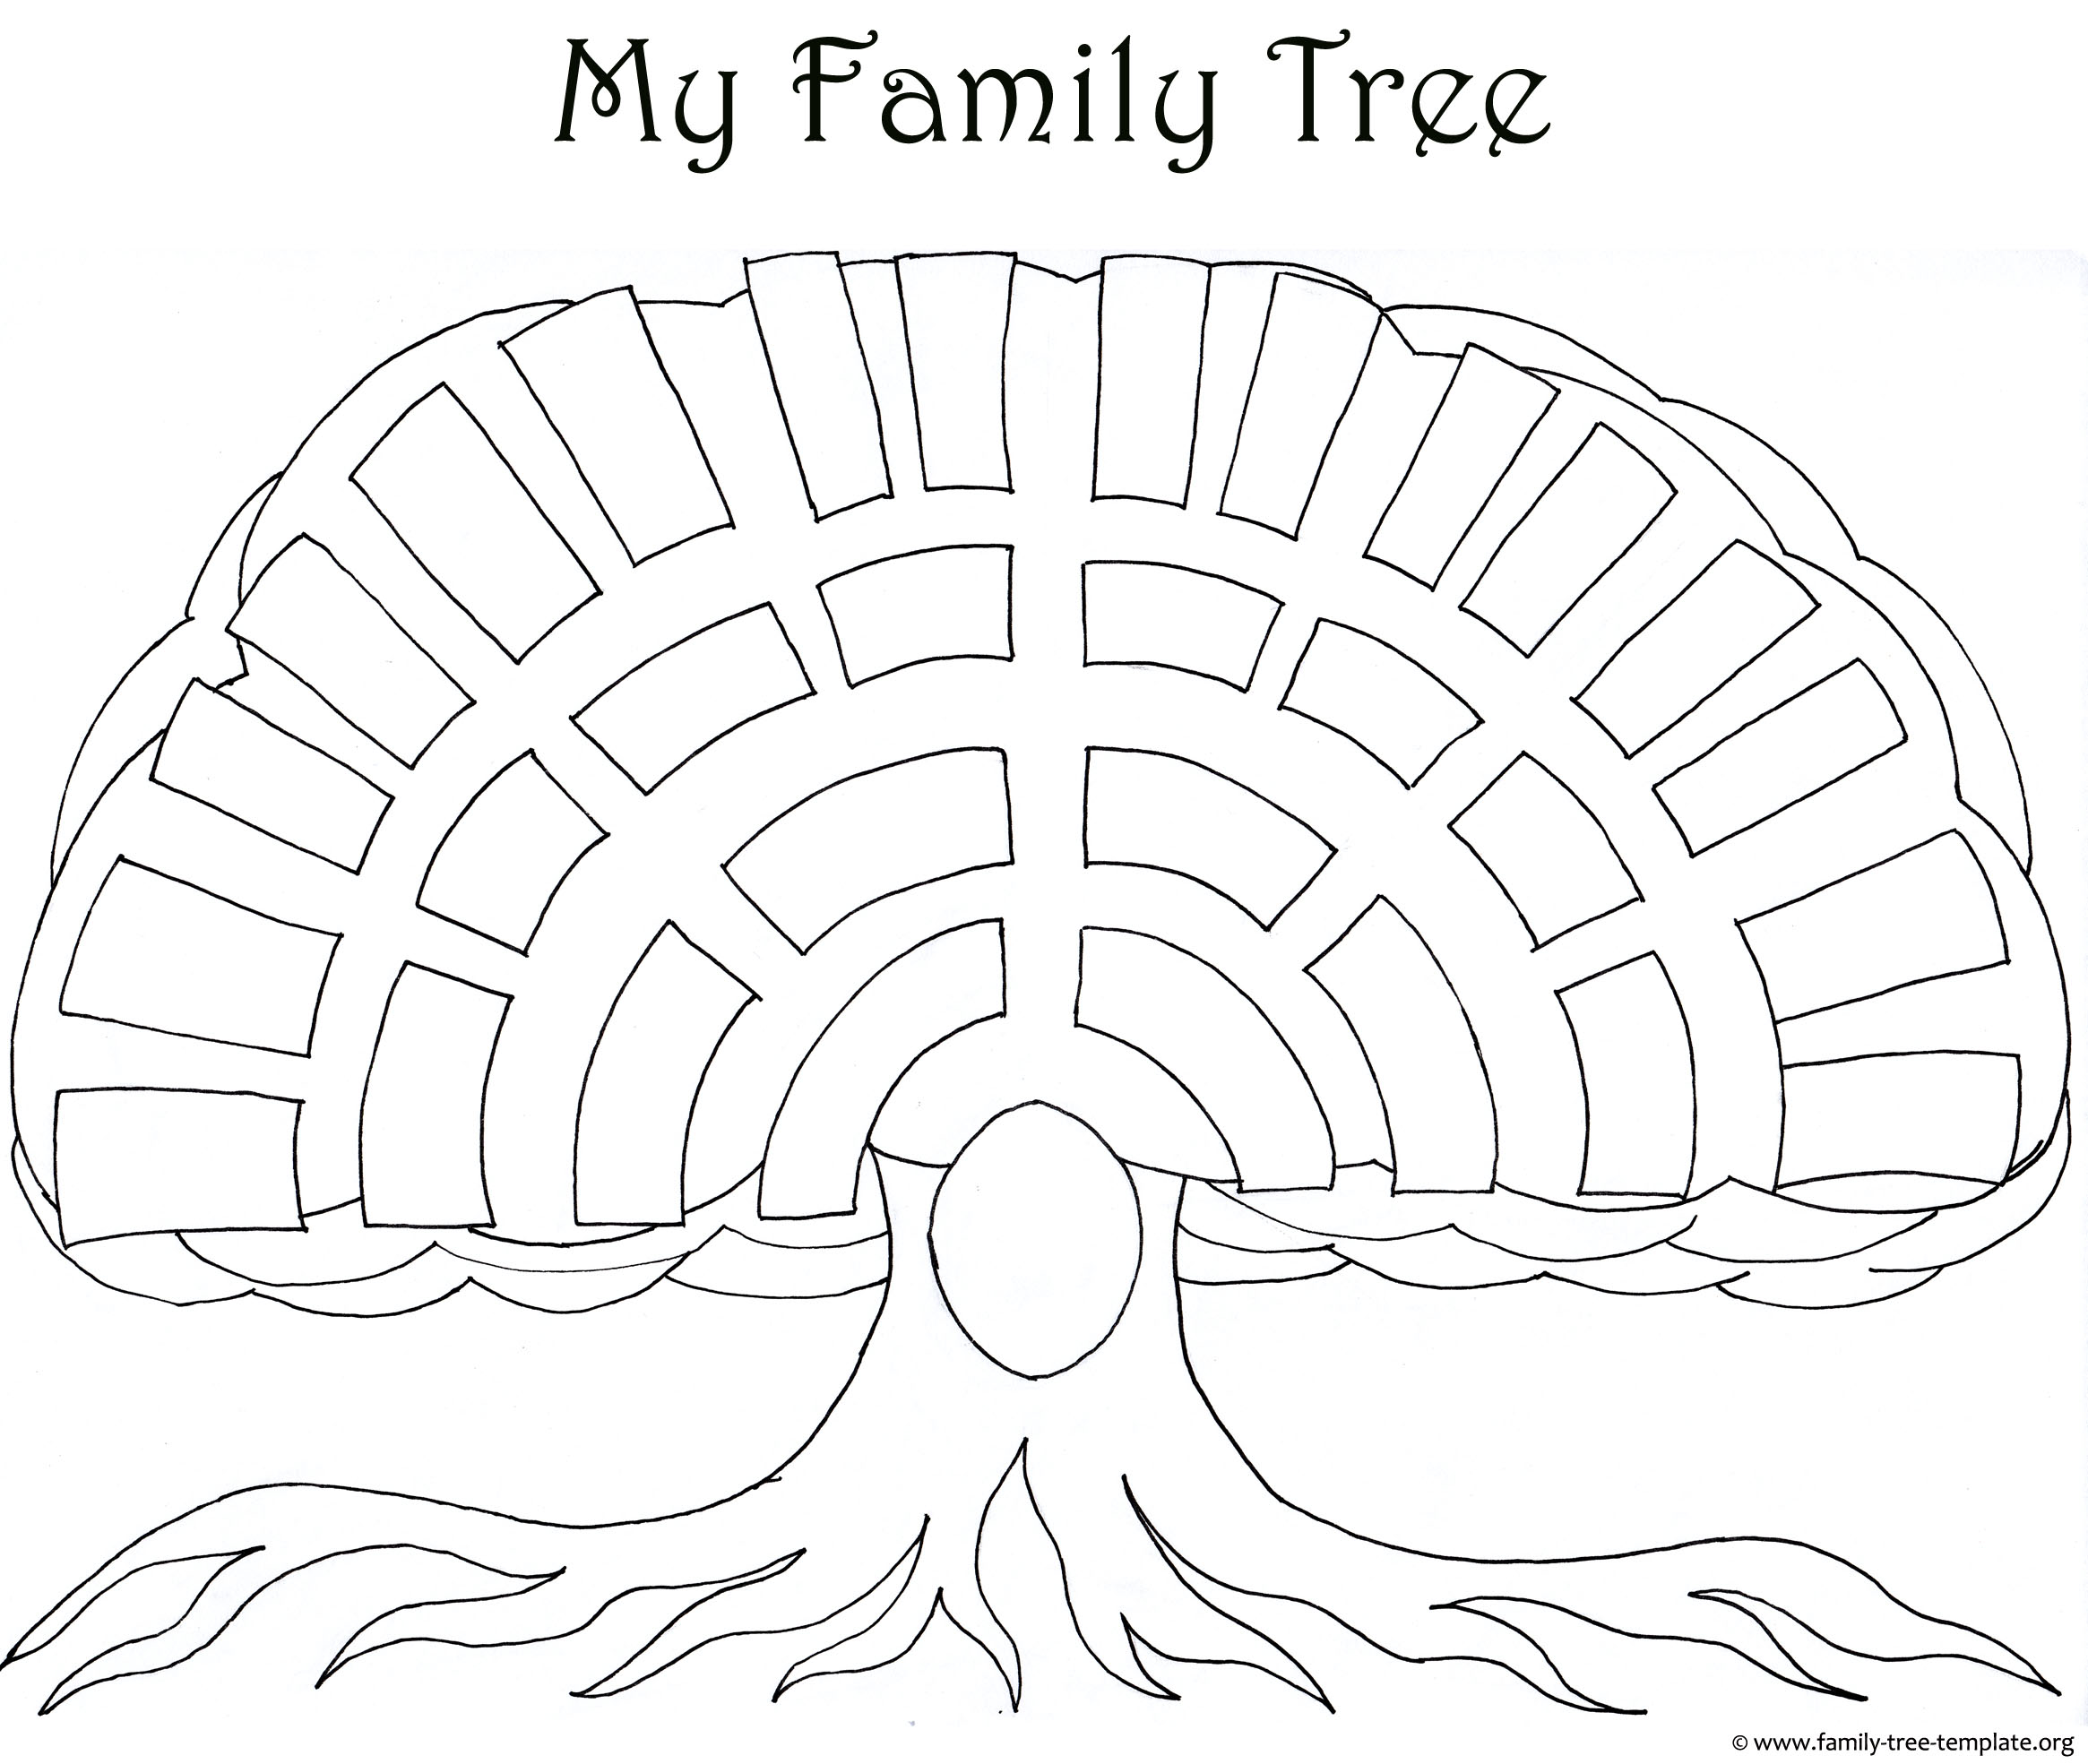 Family tree templates with aunts and uncles for Family tree template word 2007